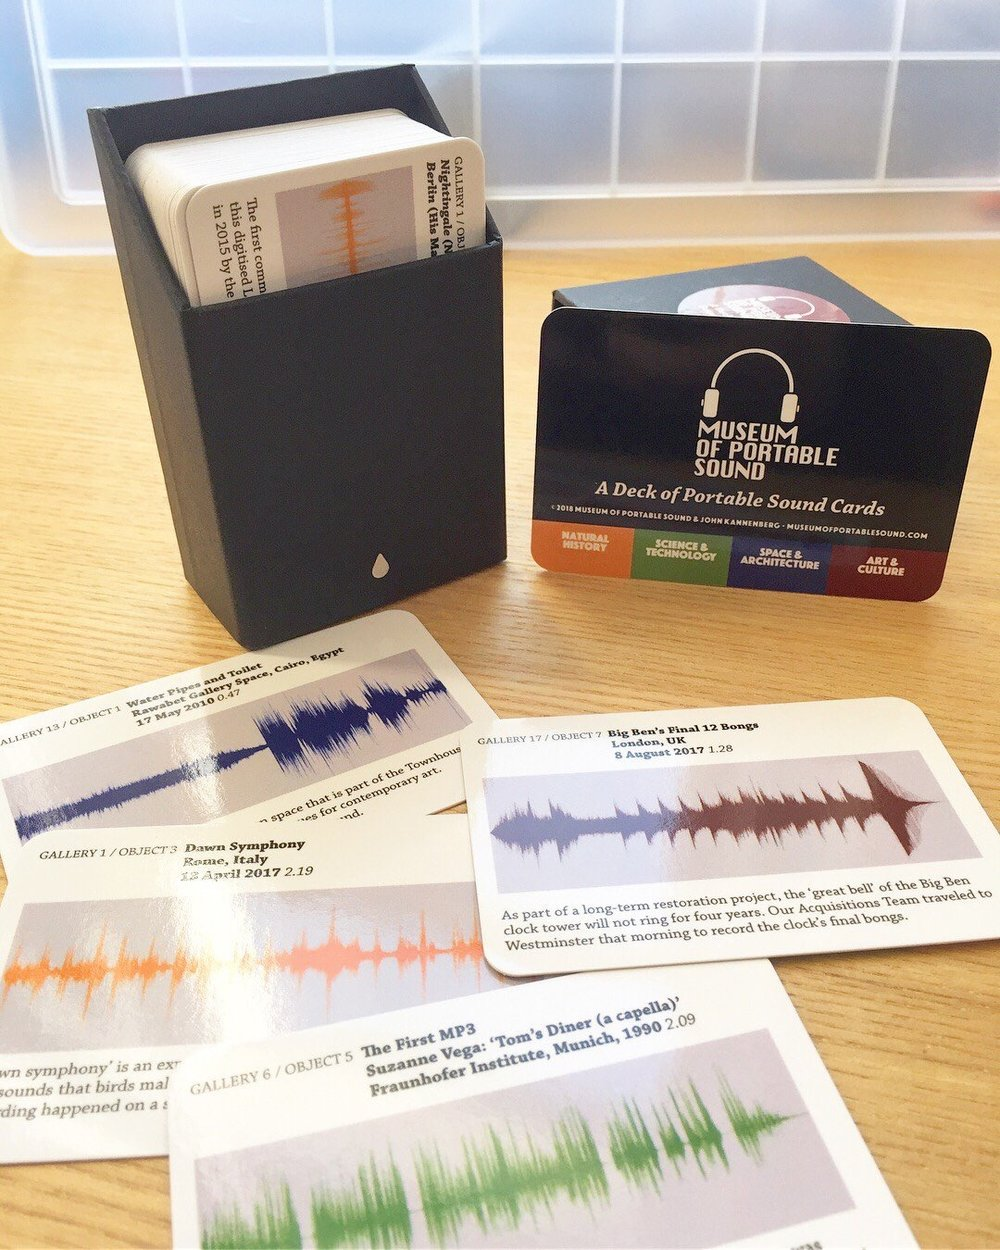 A Deck of Portable Sound Cards, produced by Museum of Portable Sound Press.